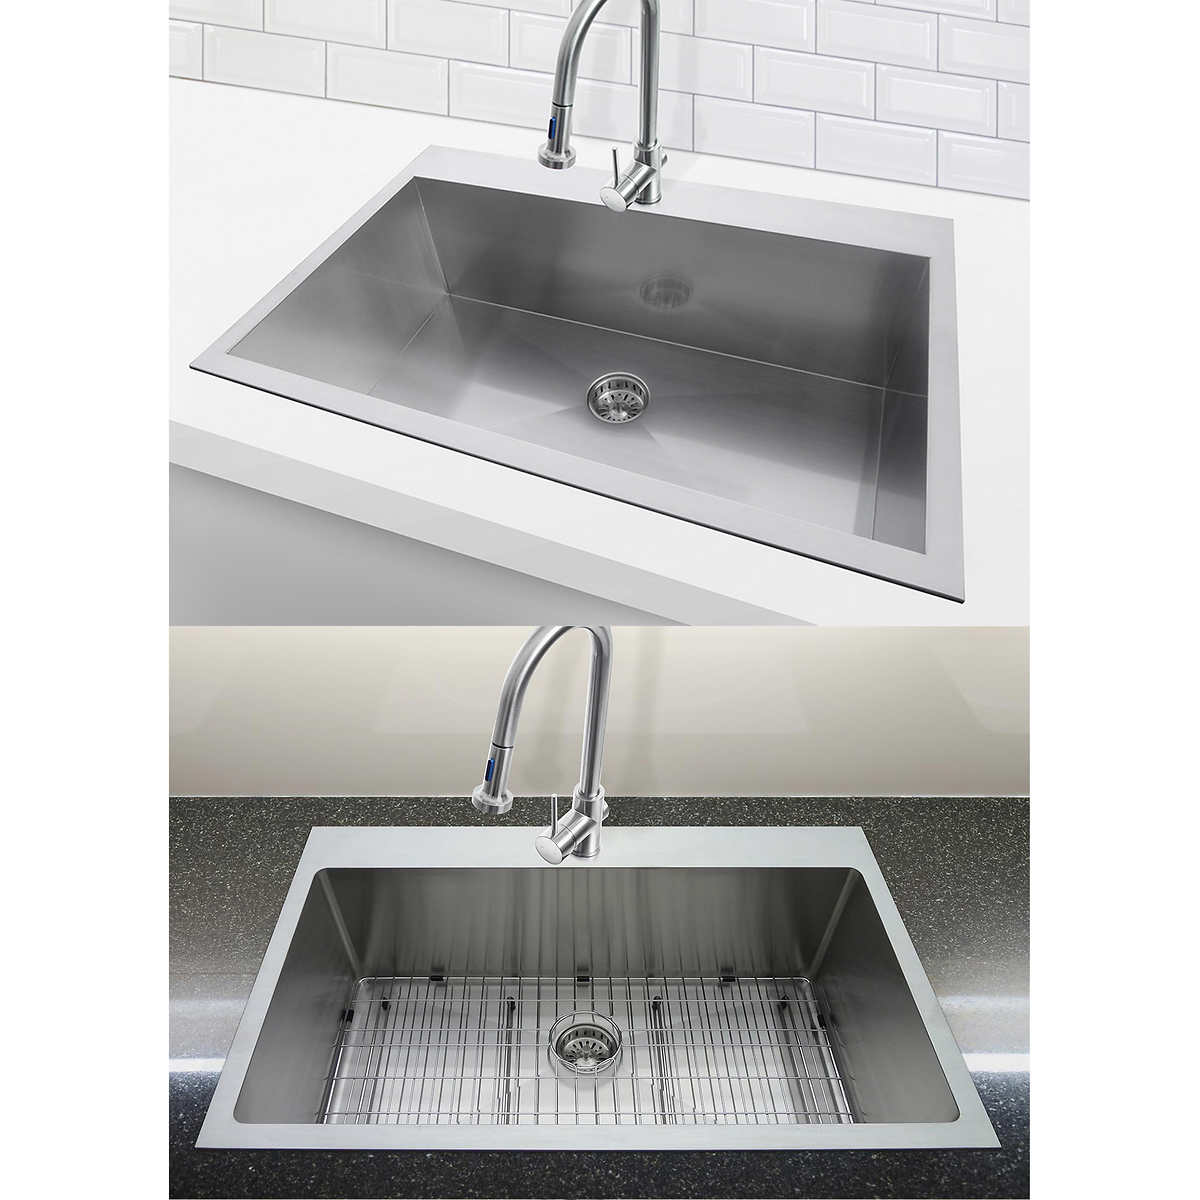 kitchen with main express xl bowl drainer worktop overmounted overmouted reversible white ceramic reginox sinks sink